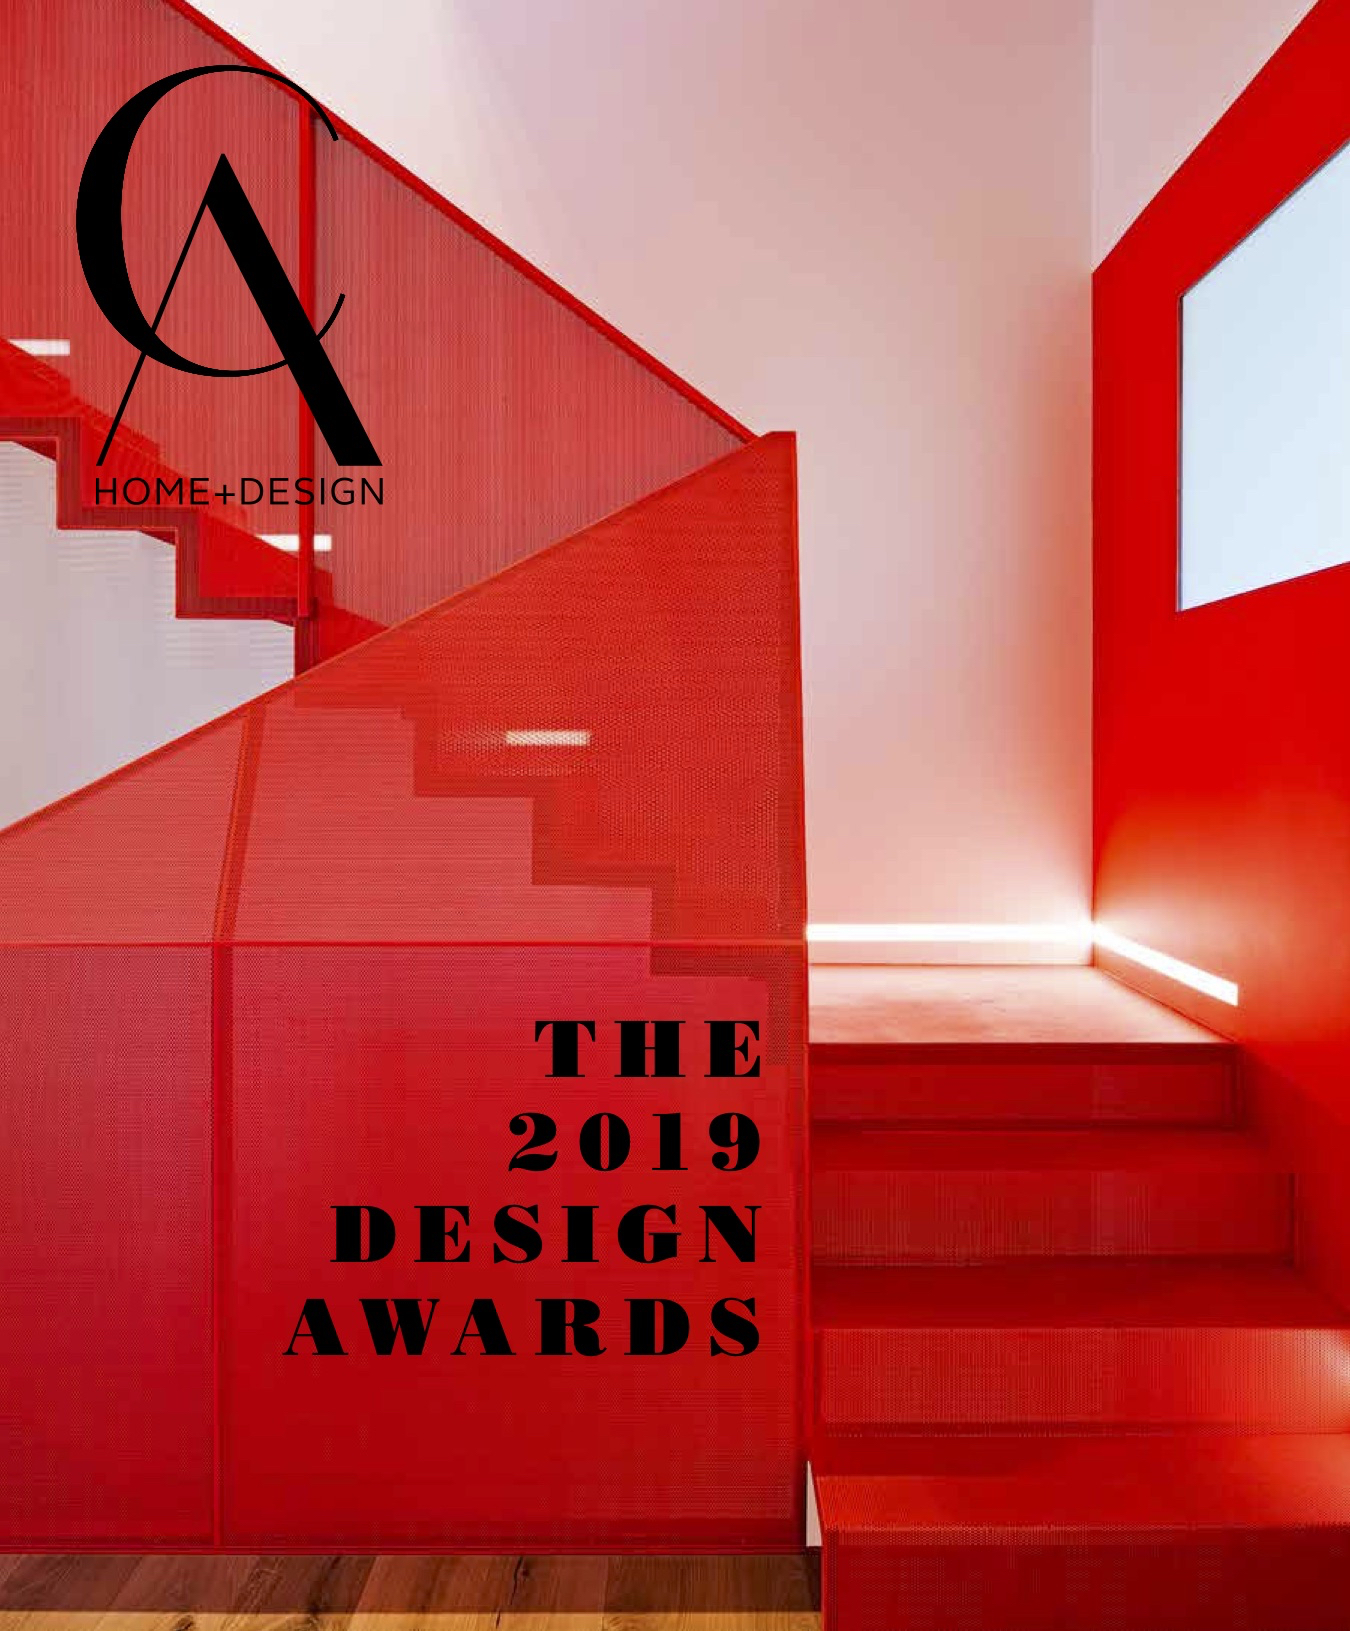 THE 2019 DESIGN AWARDS